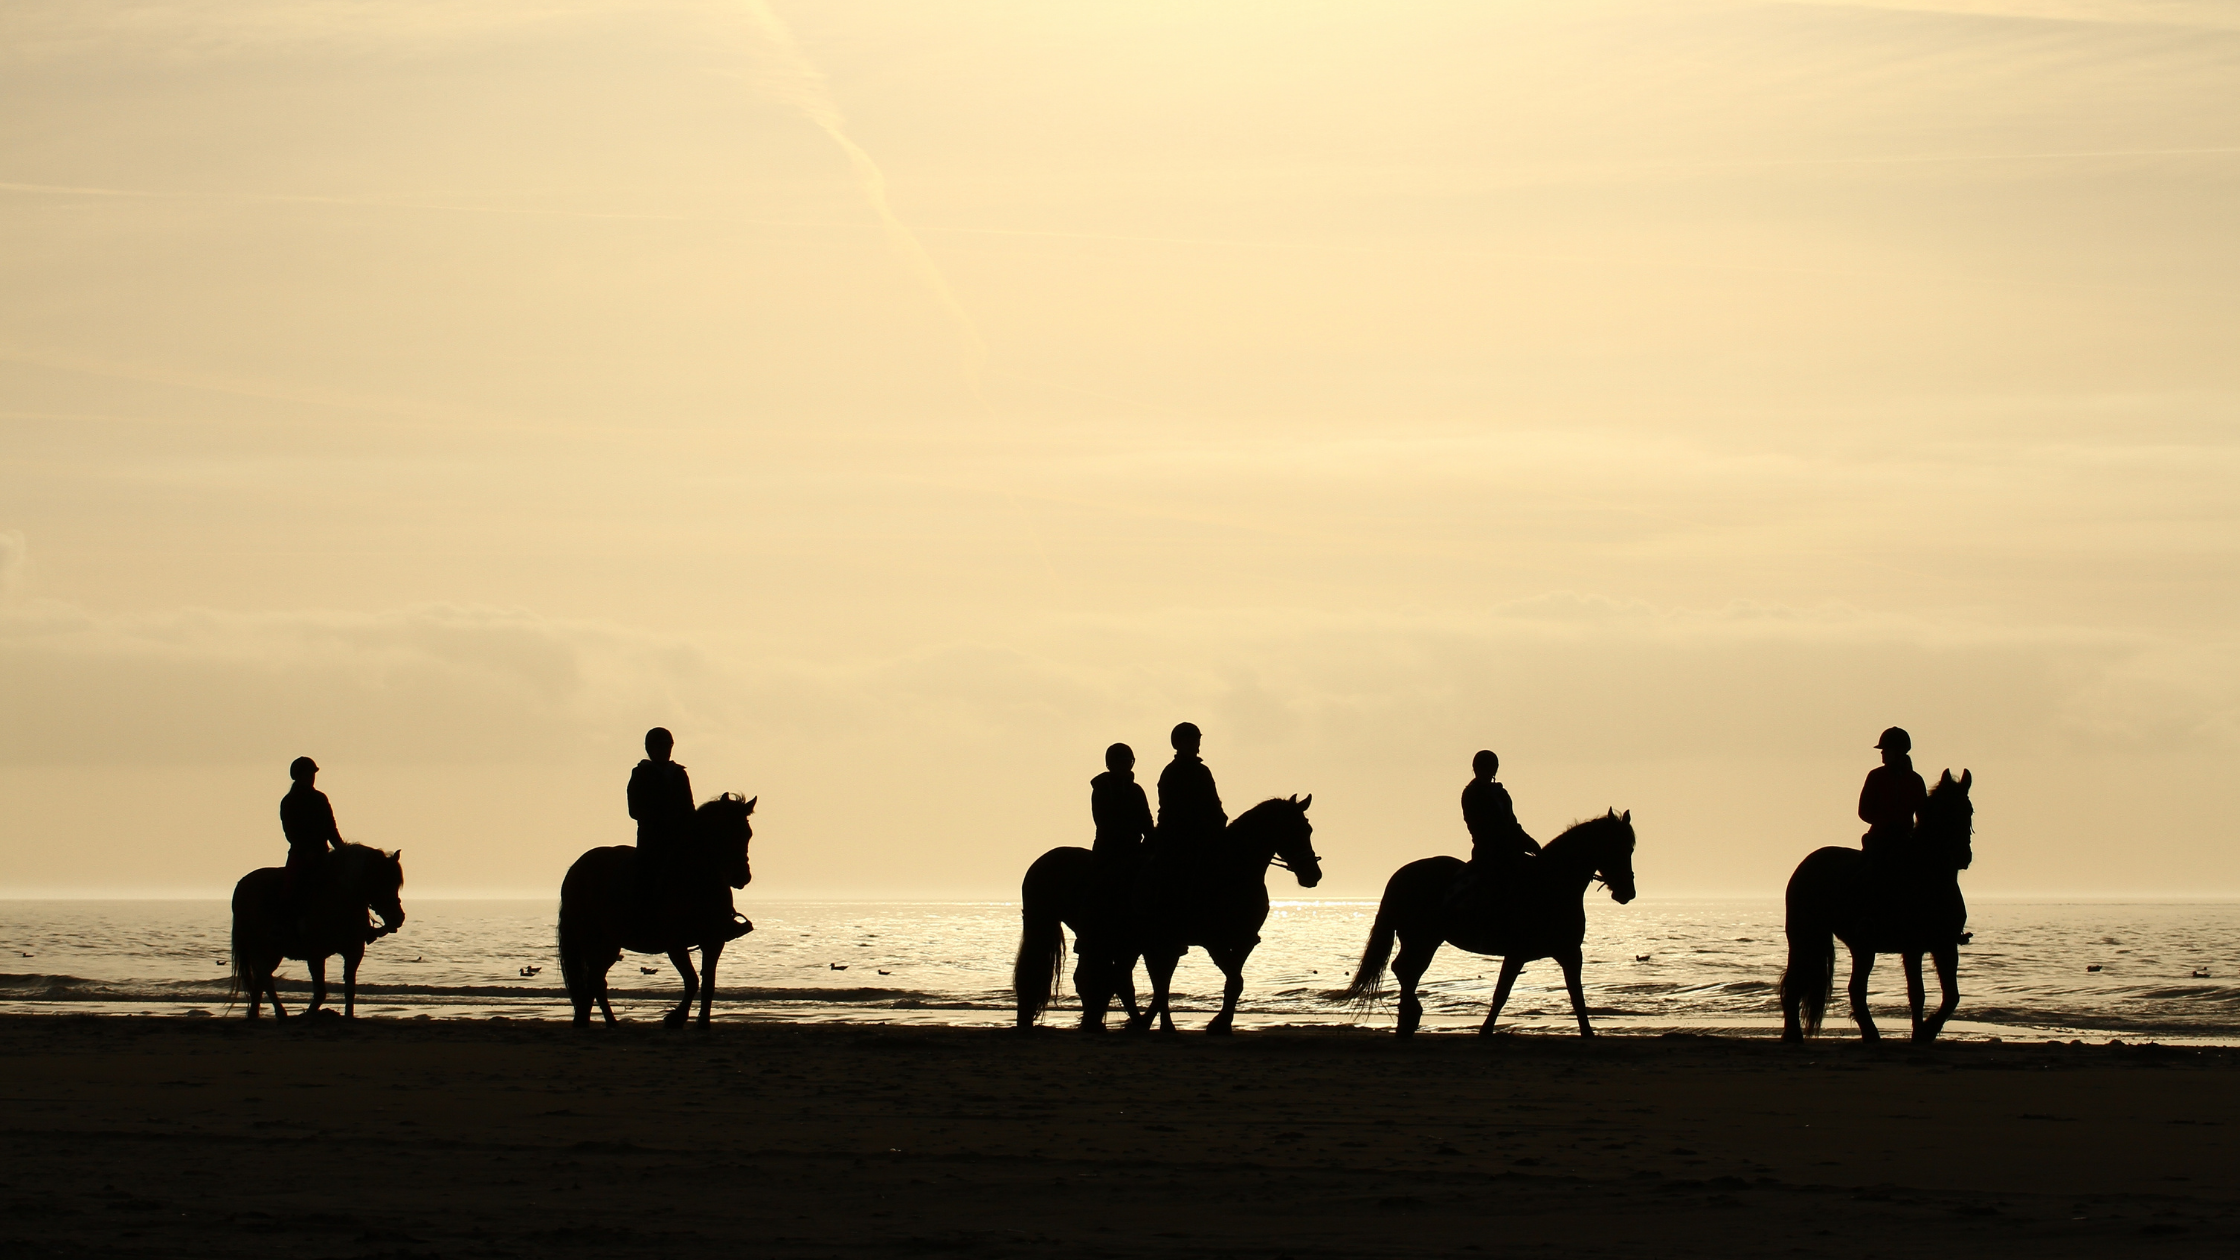 Horseback riding on the beaches of Terschelling